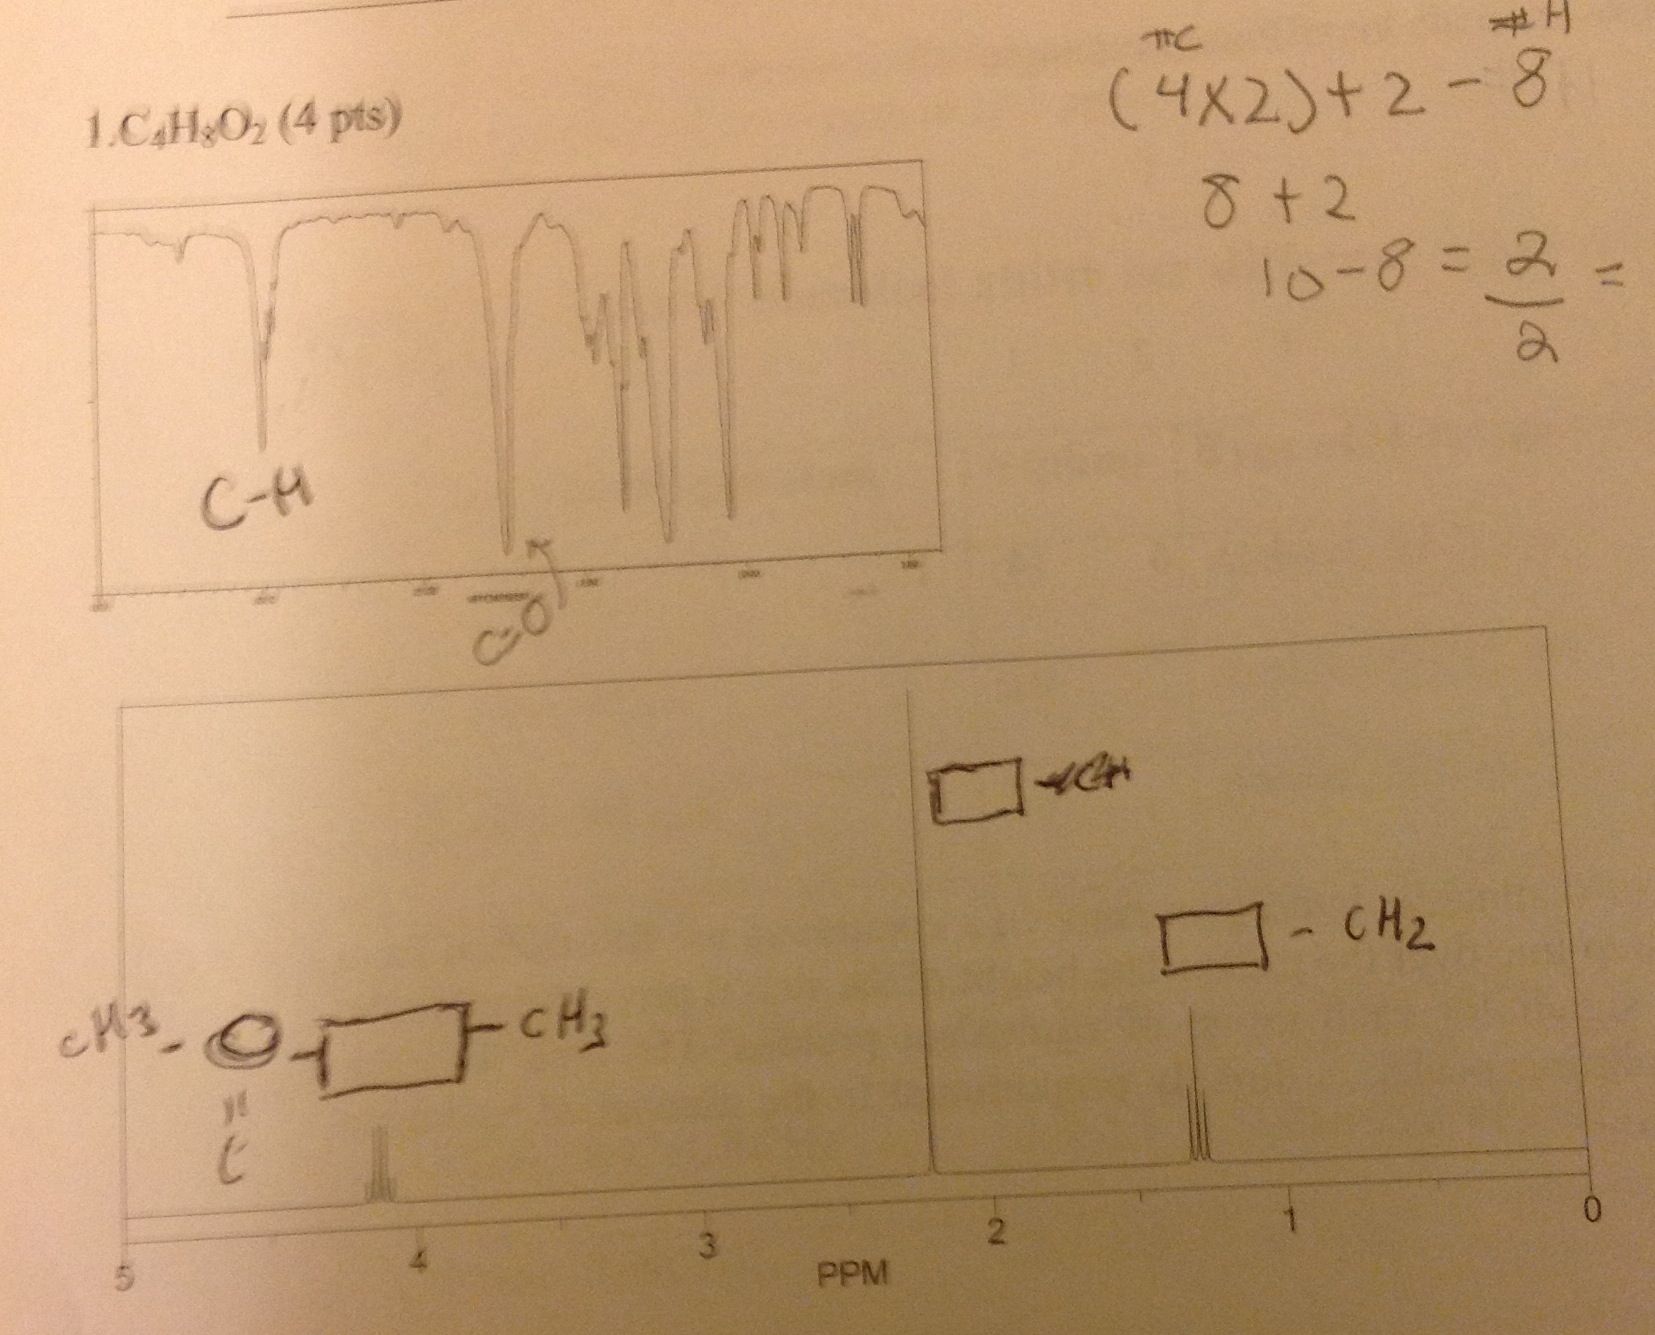 I need to find the actual structure, im given NMR